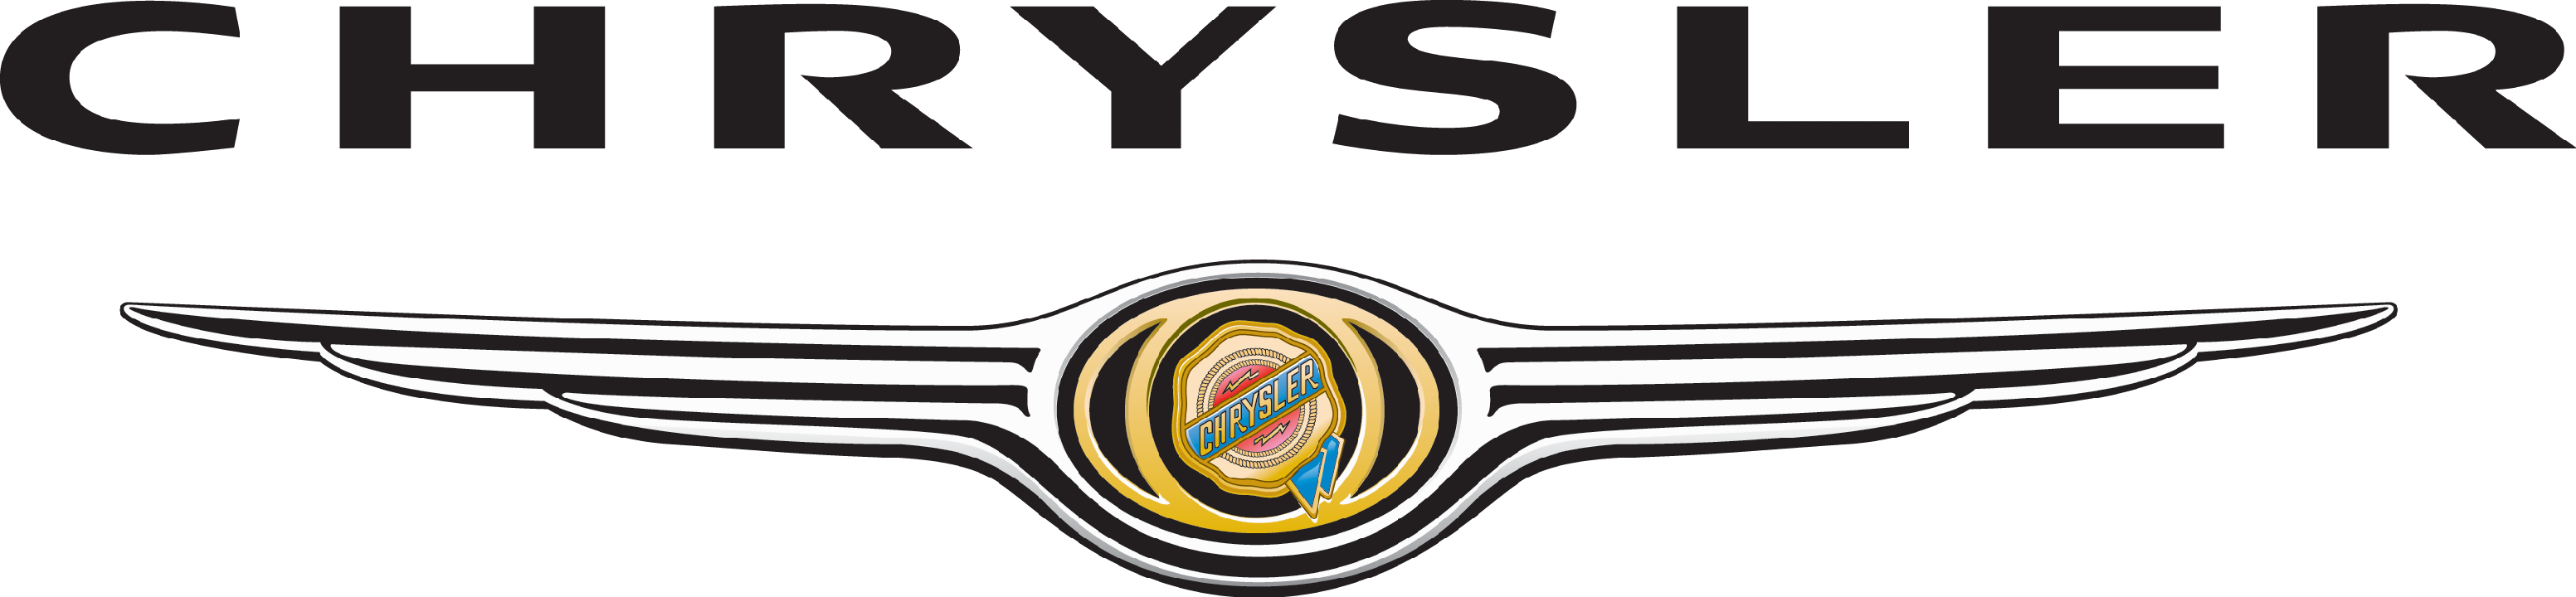 Chrysler 300 Logos.